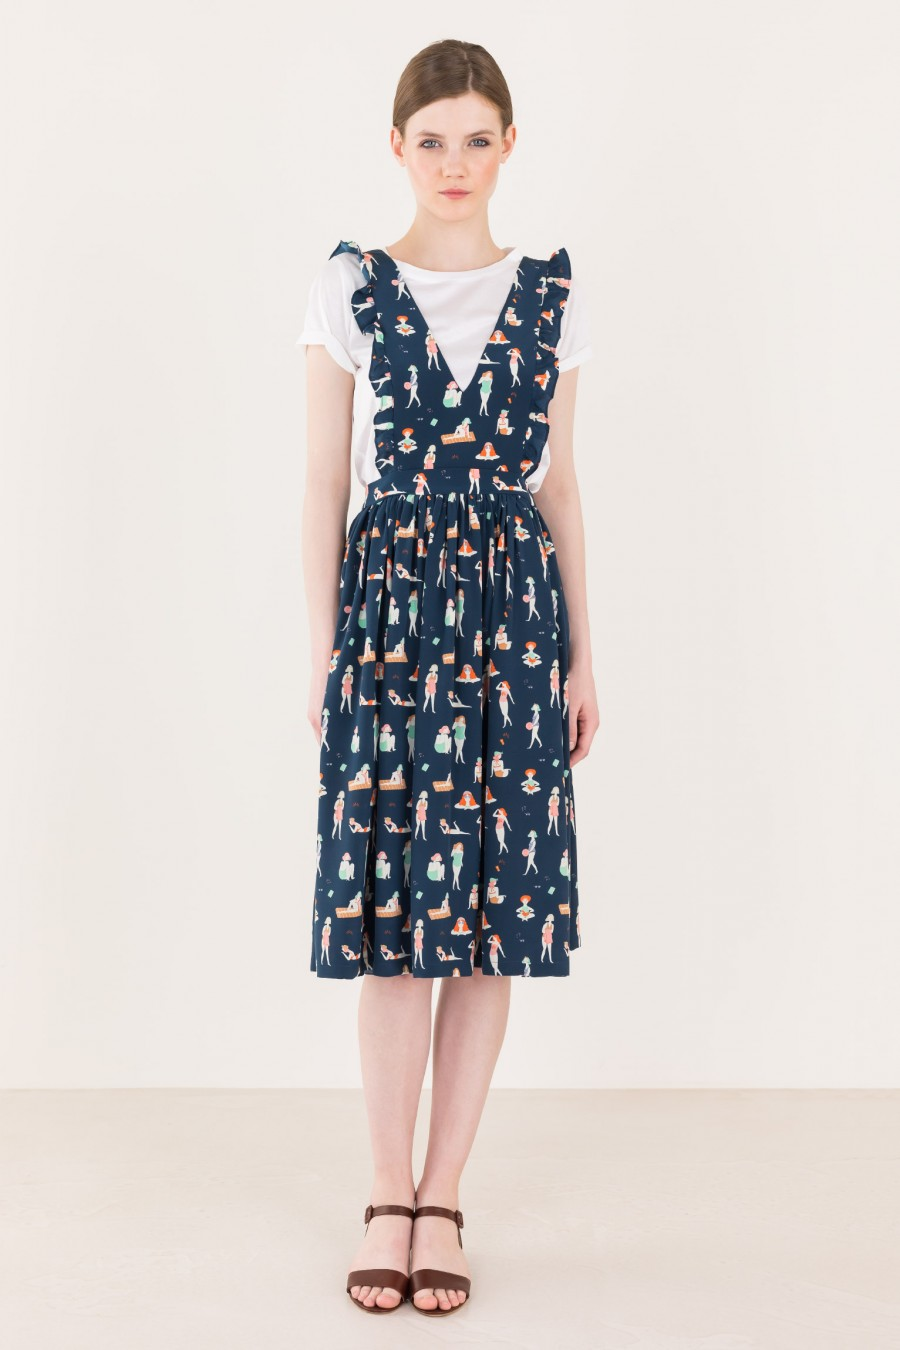 Dungarees dress with pattern